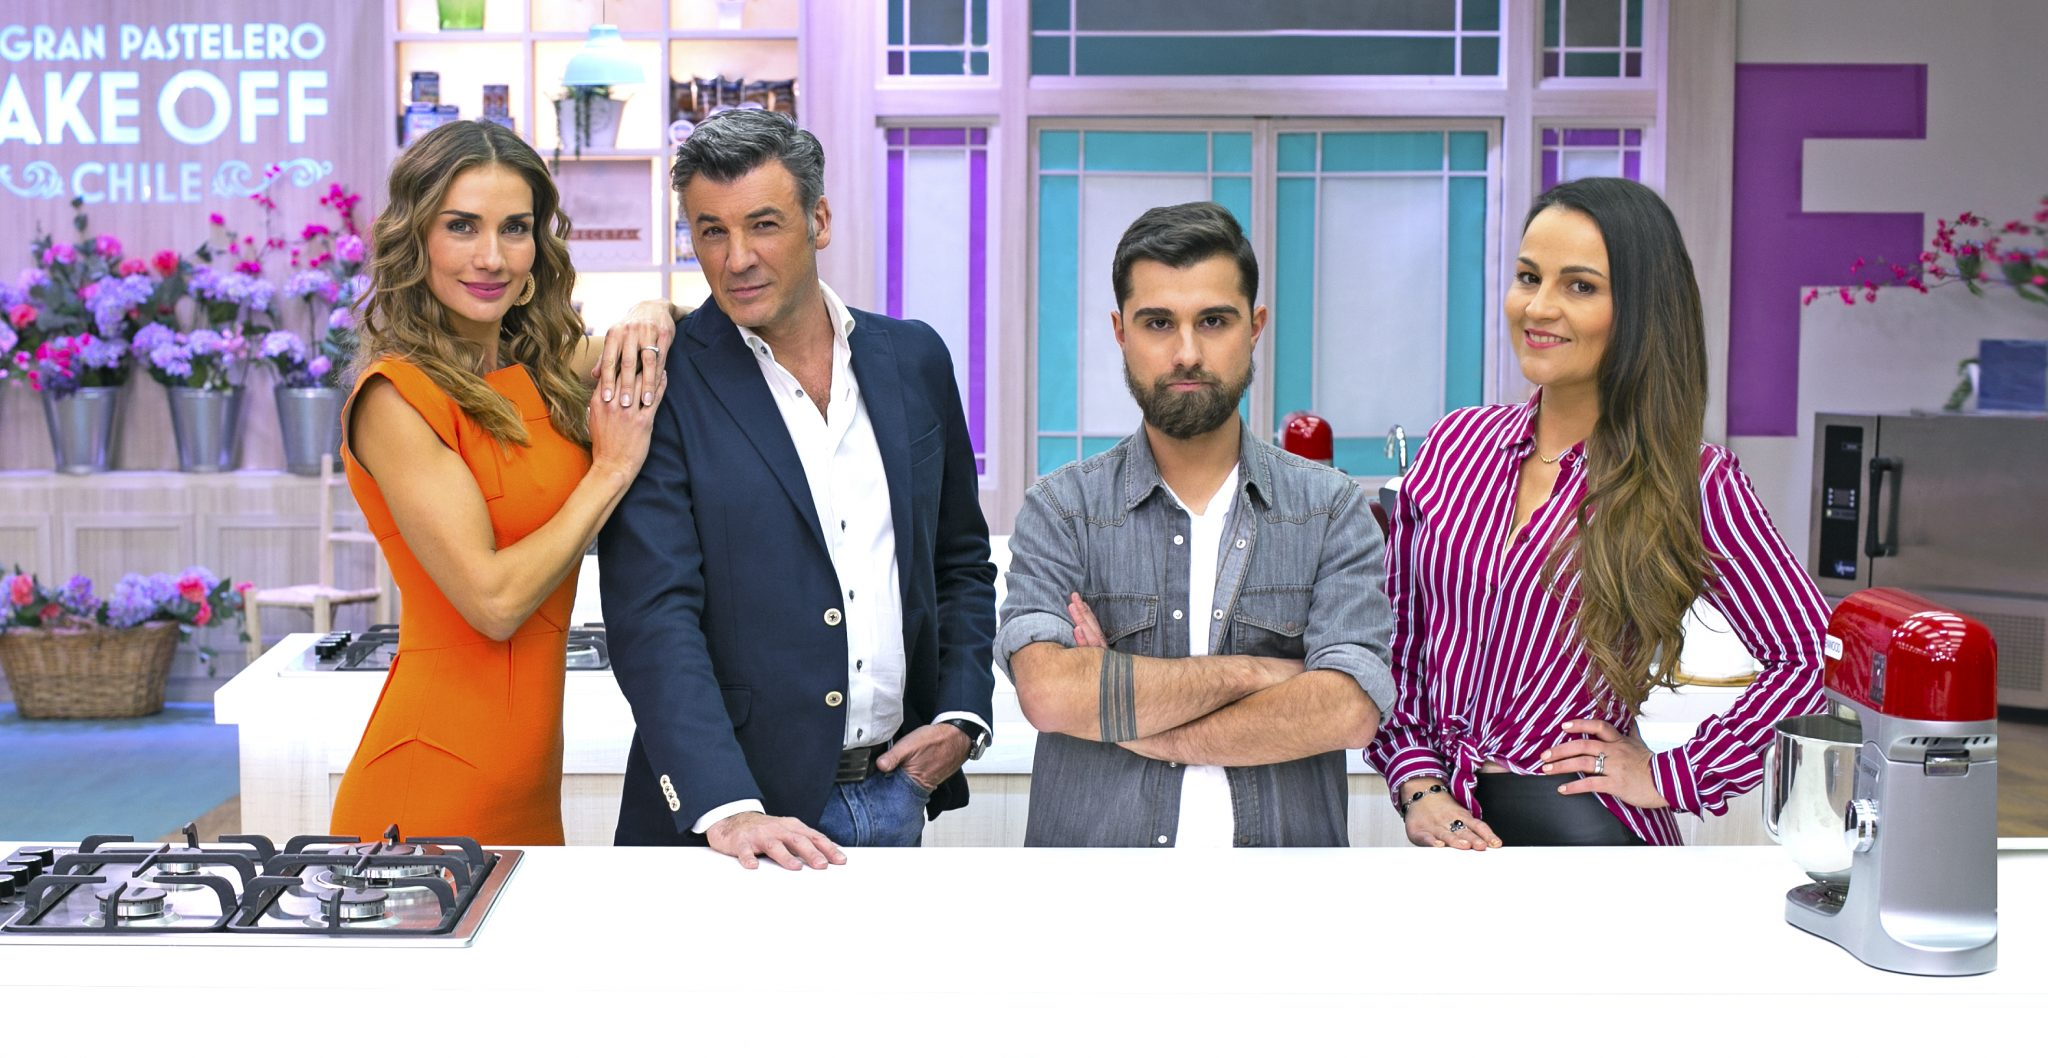 Bake Off Chile